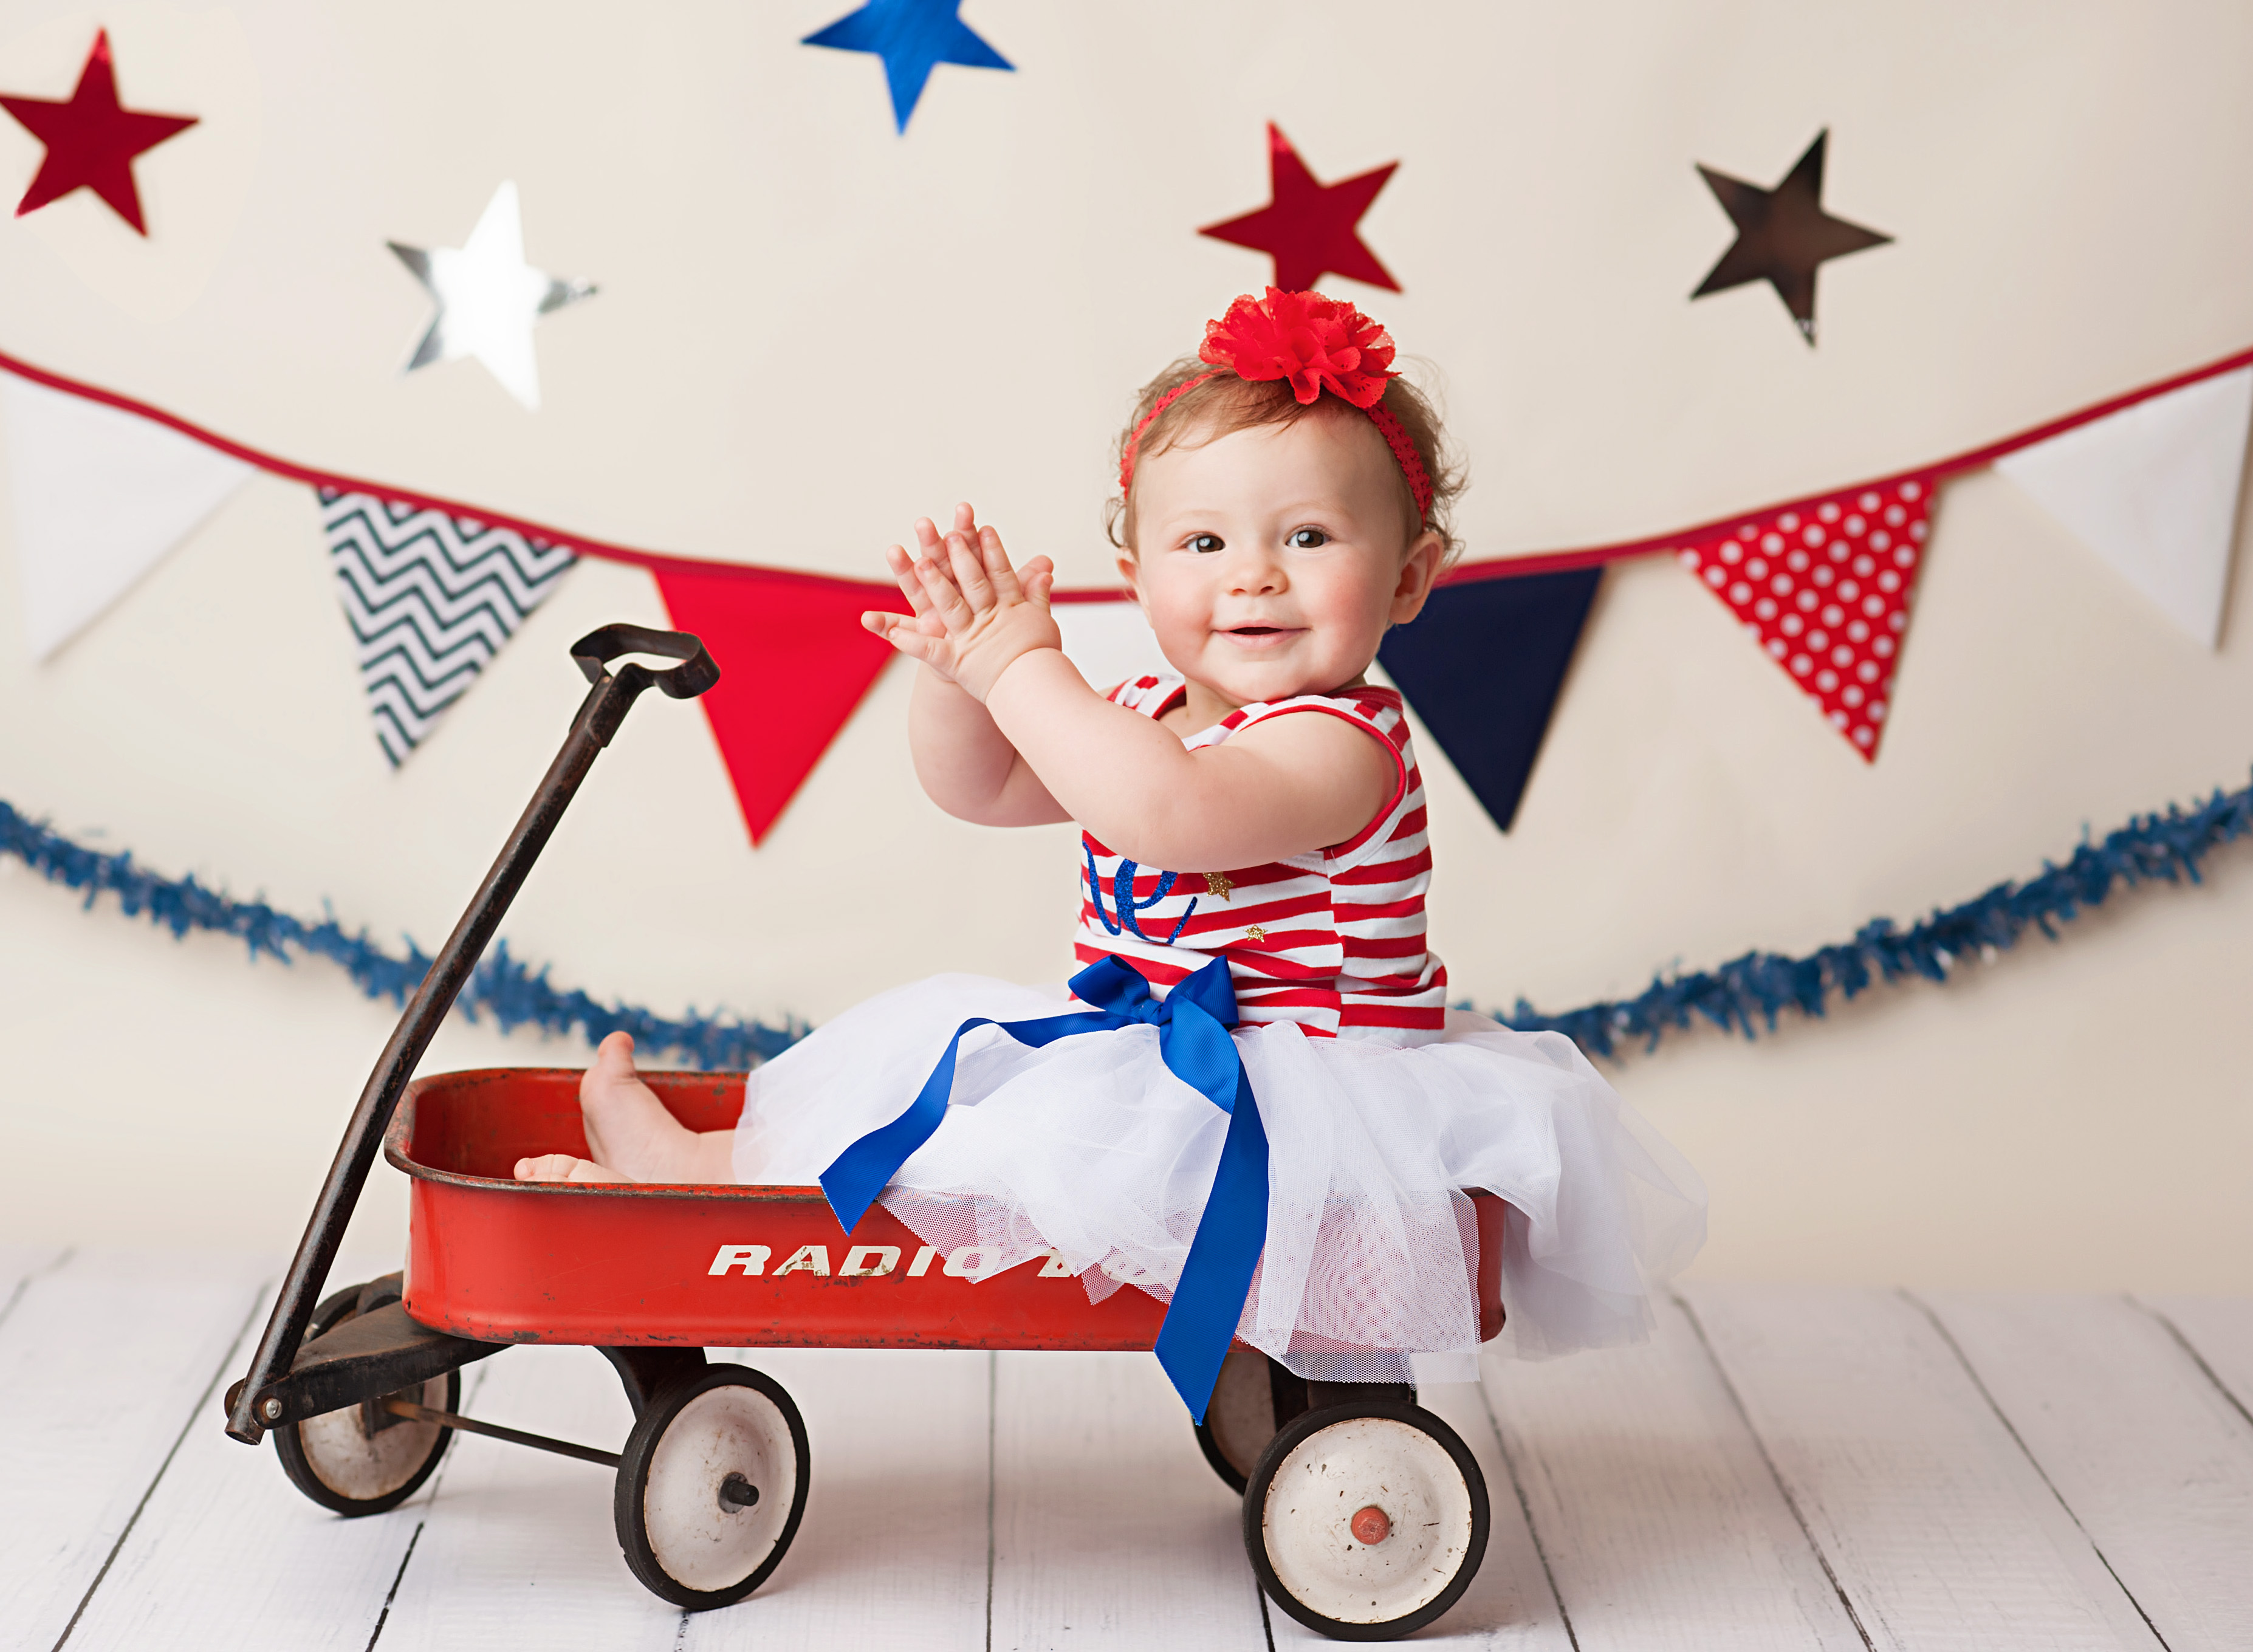 Paisley, First Birthday Cake Smash Photo Session